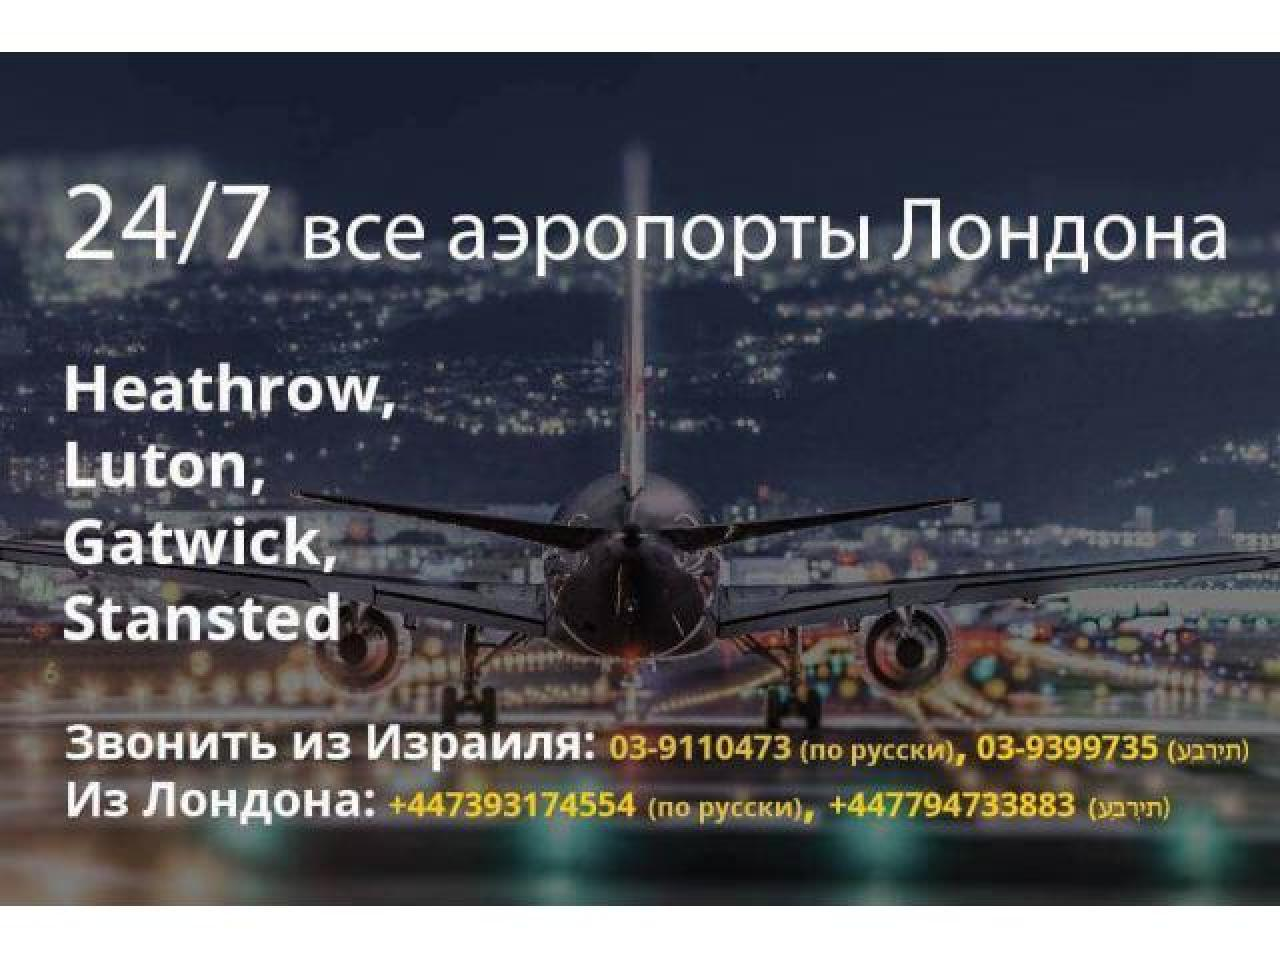 London airport  taxi 24/7 - 1